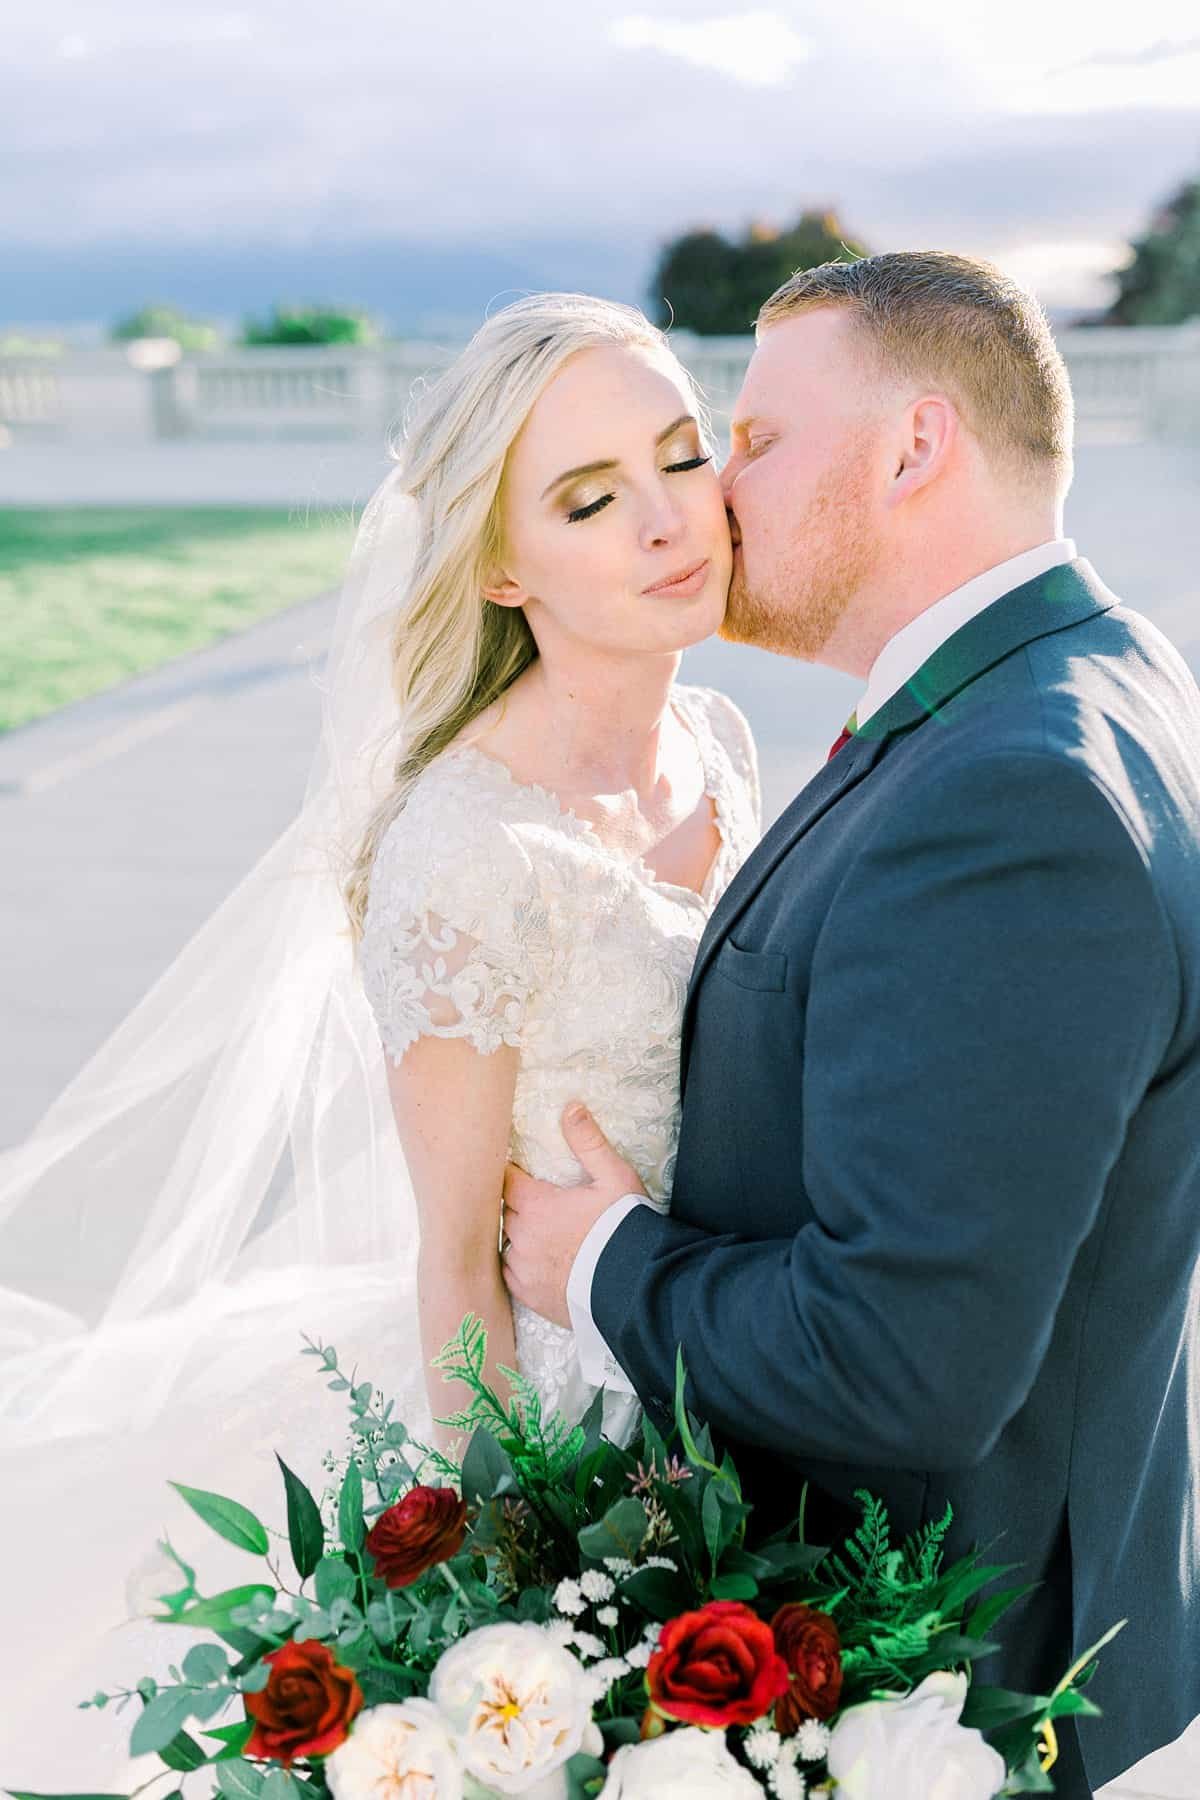 Spring film wedding photography, Utah bride and groom, modest wedding dress with long veil